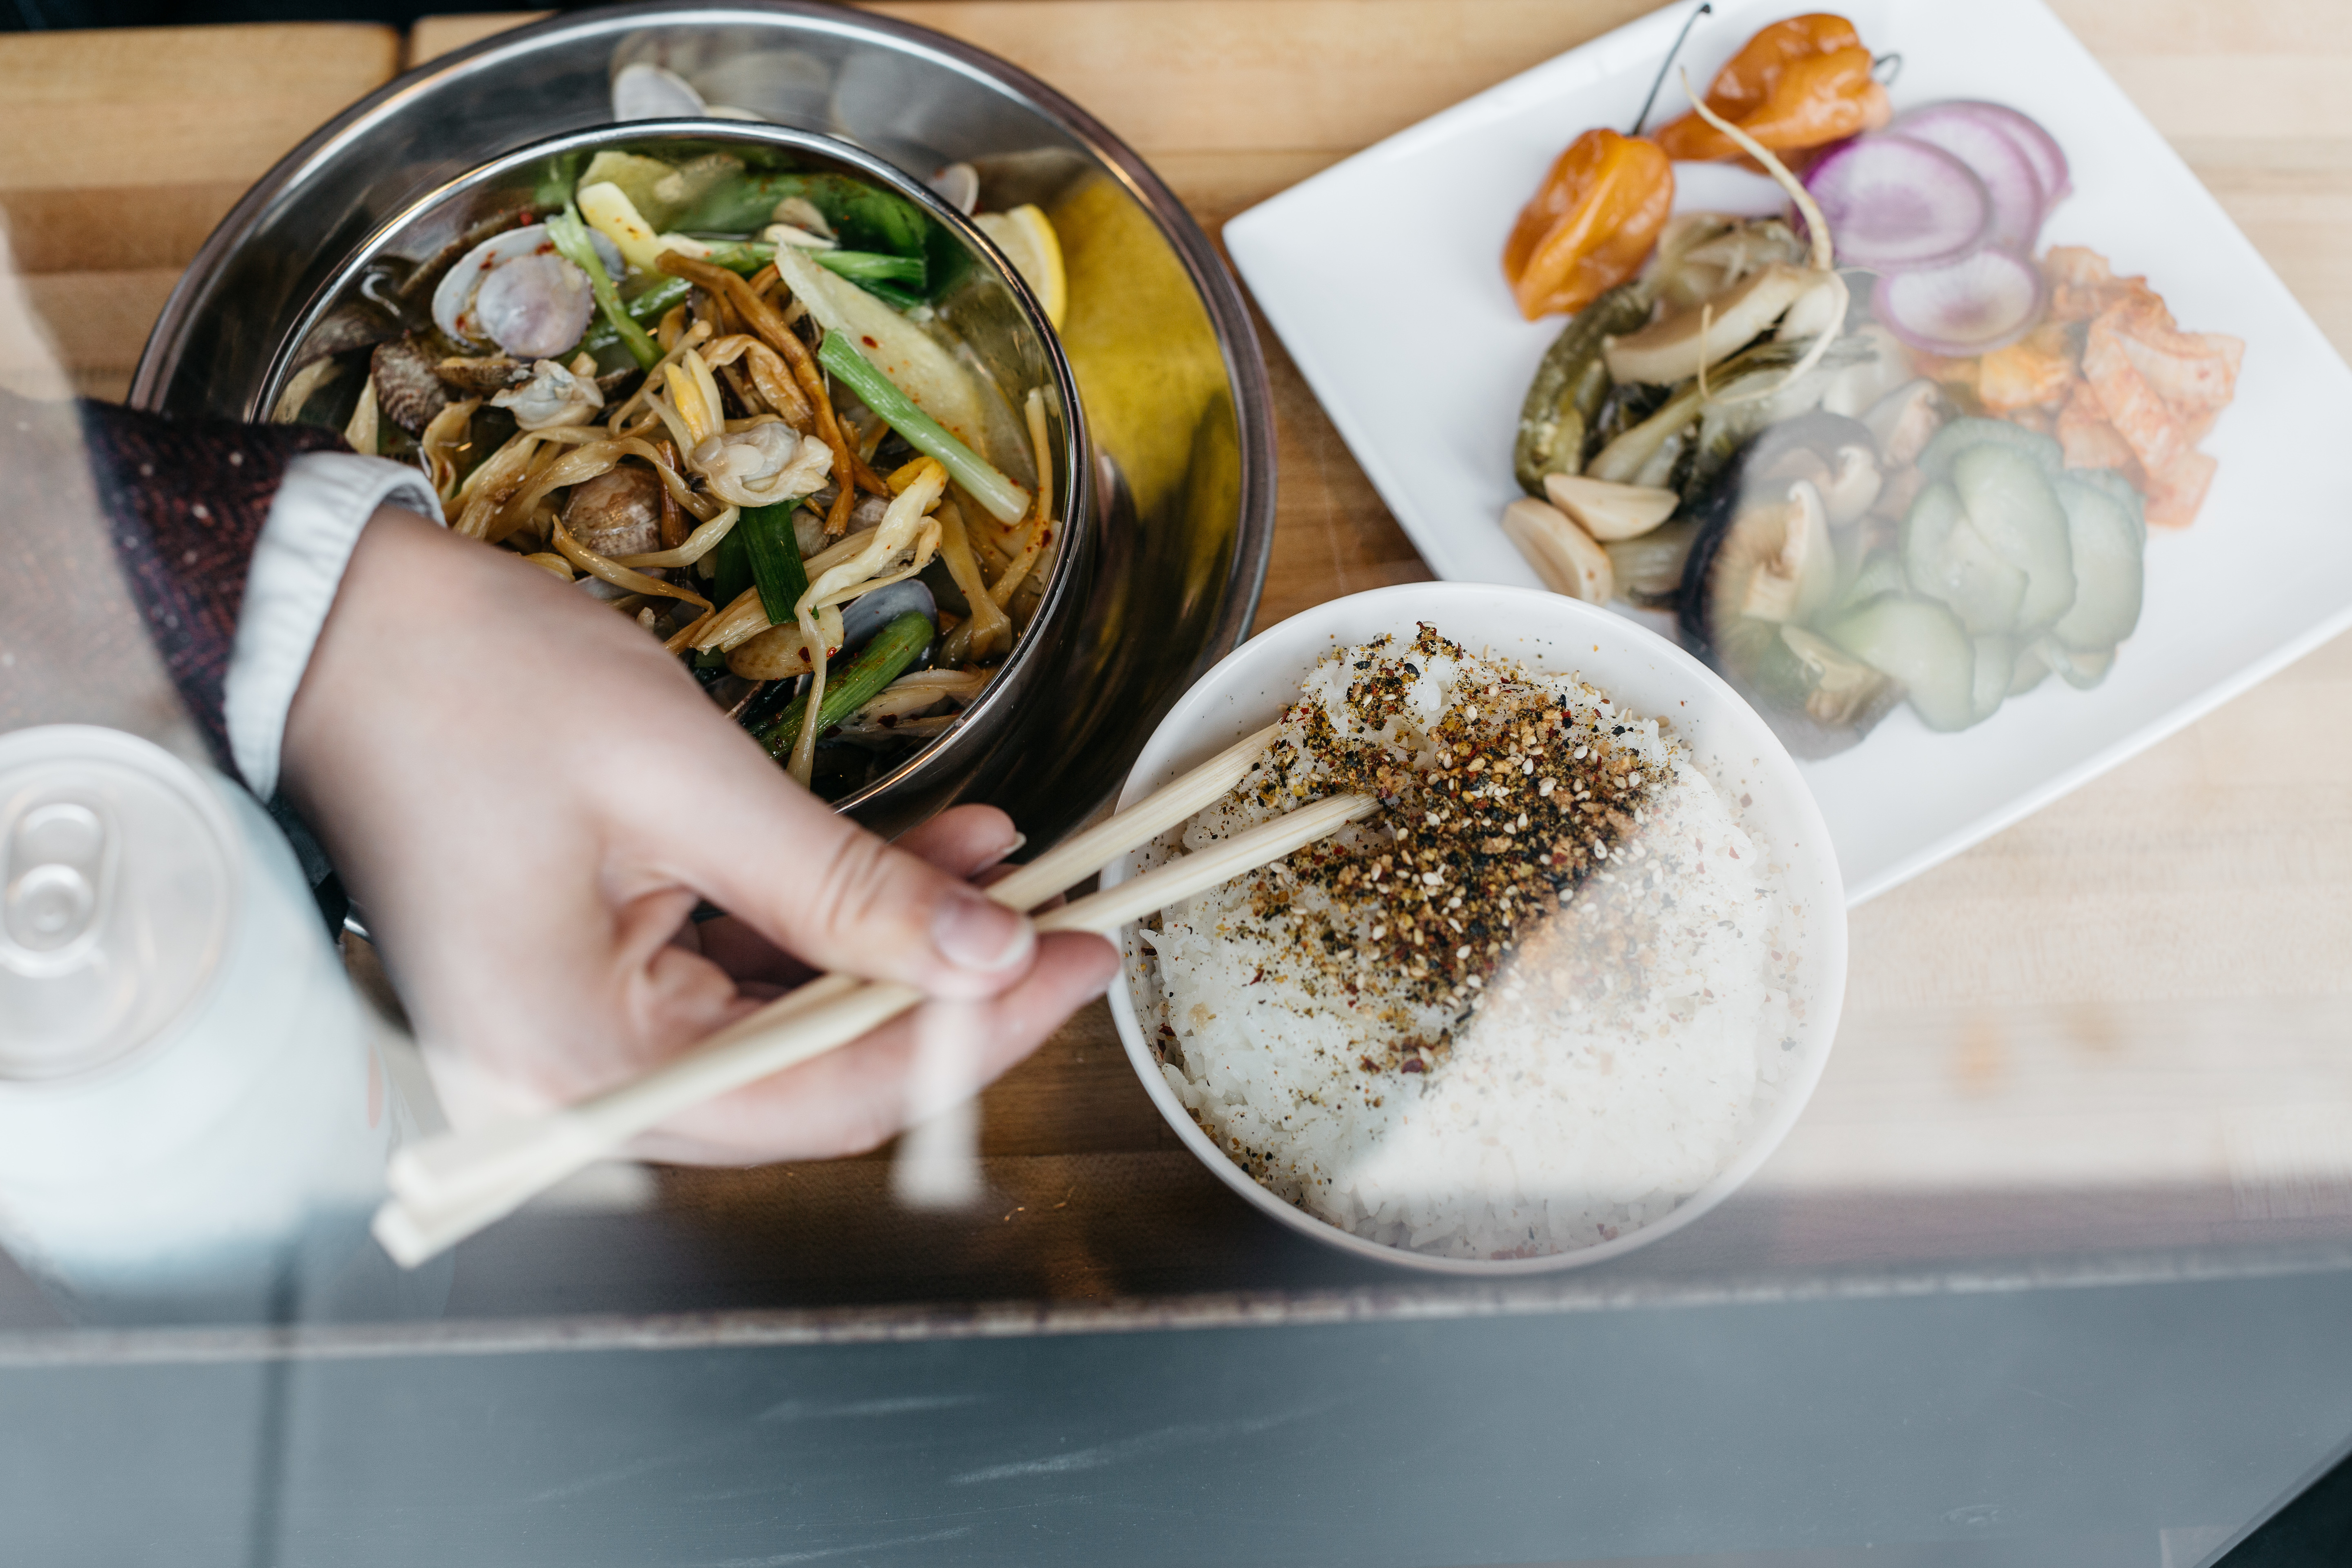 A hand with chopsticks reaches for furikake rice next to a metal bowl of clams and a plate of pickled veggies.